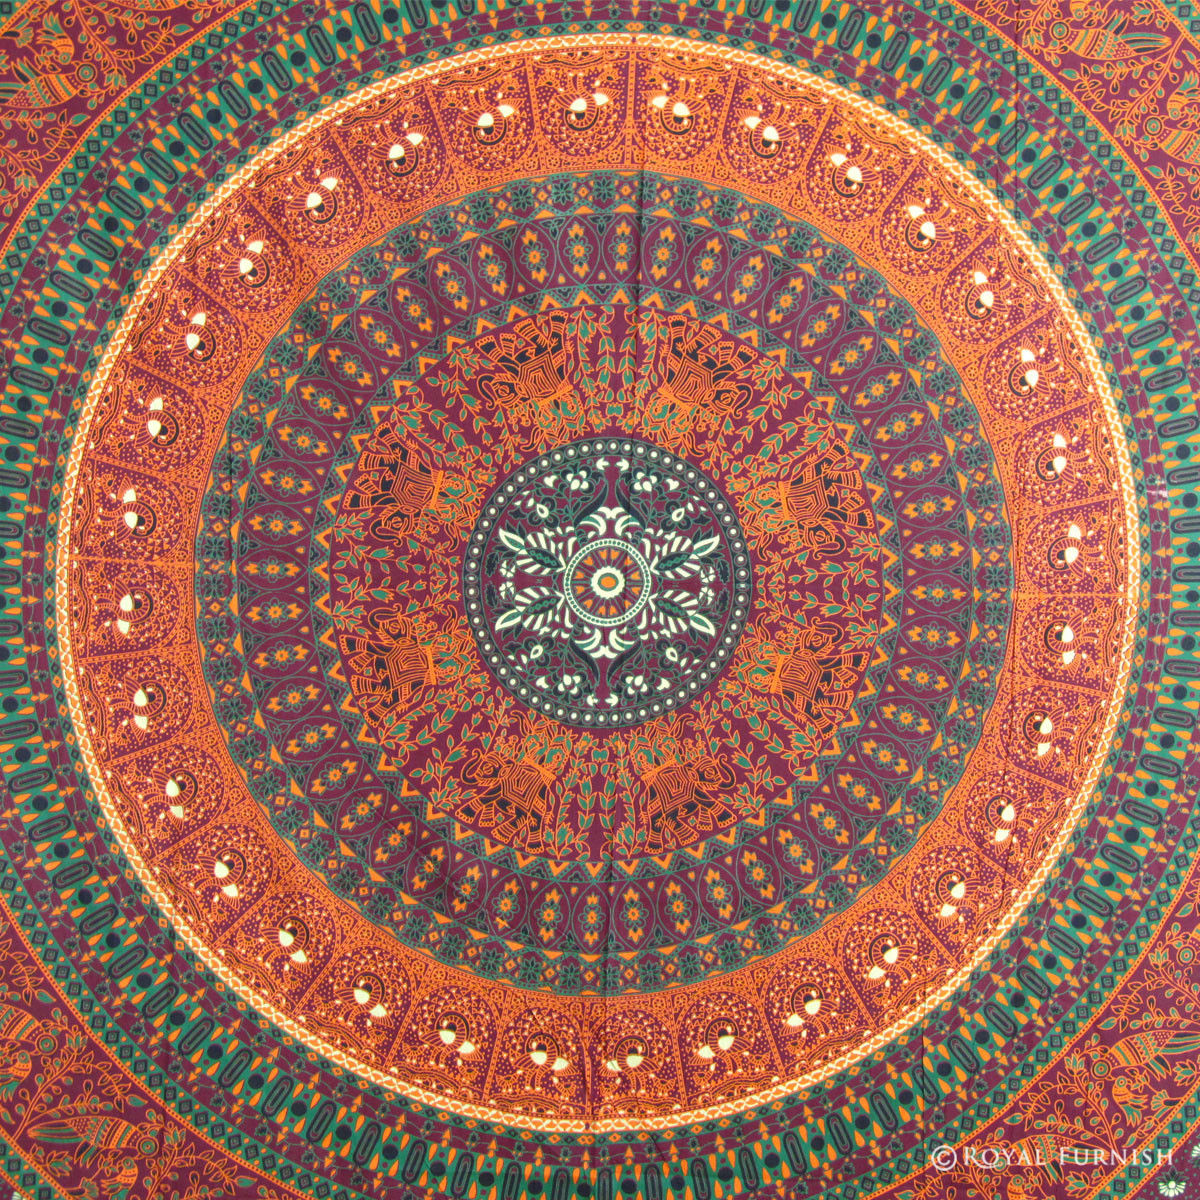 Psychedelic Indian Mandala Tapestry Throw Dorm Room Wall